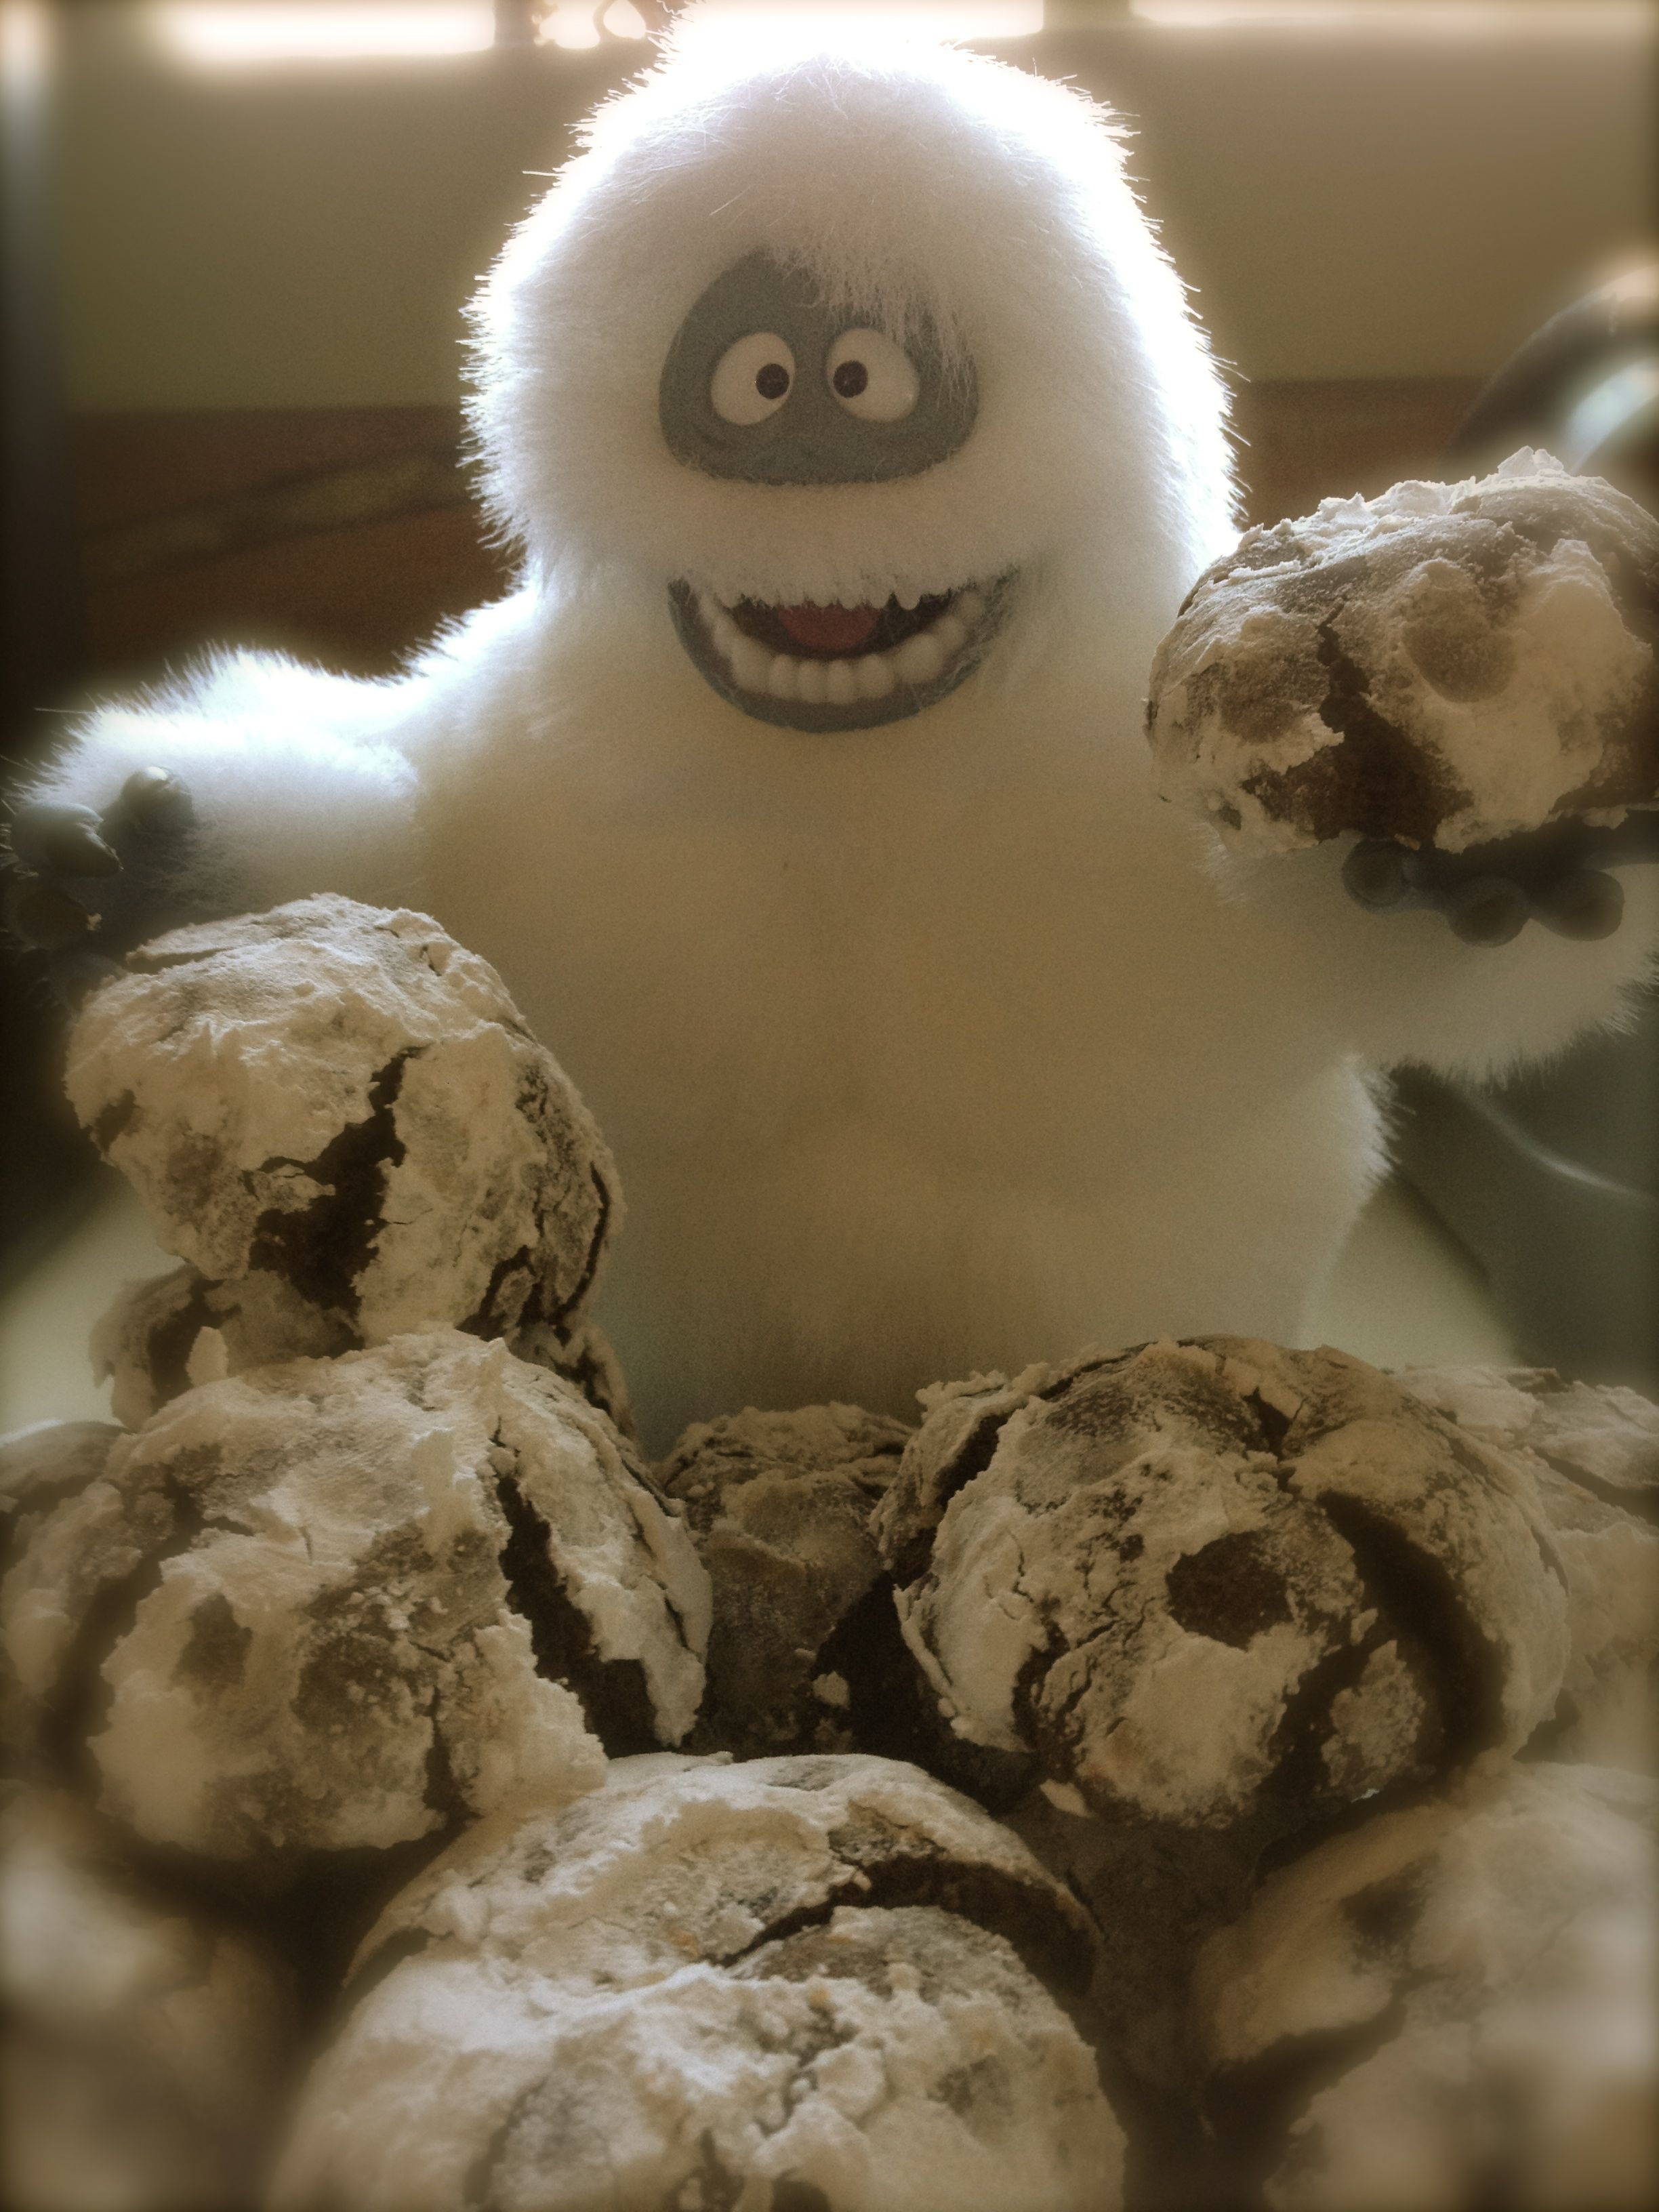 The real reason why the Bumble is fluffy.